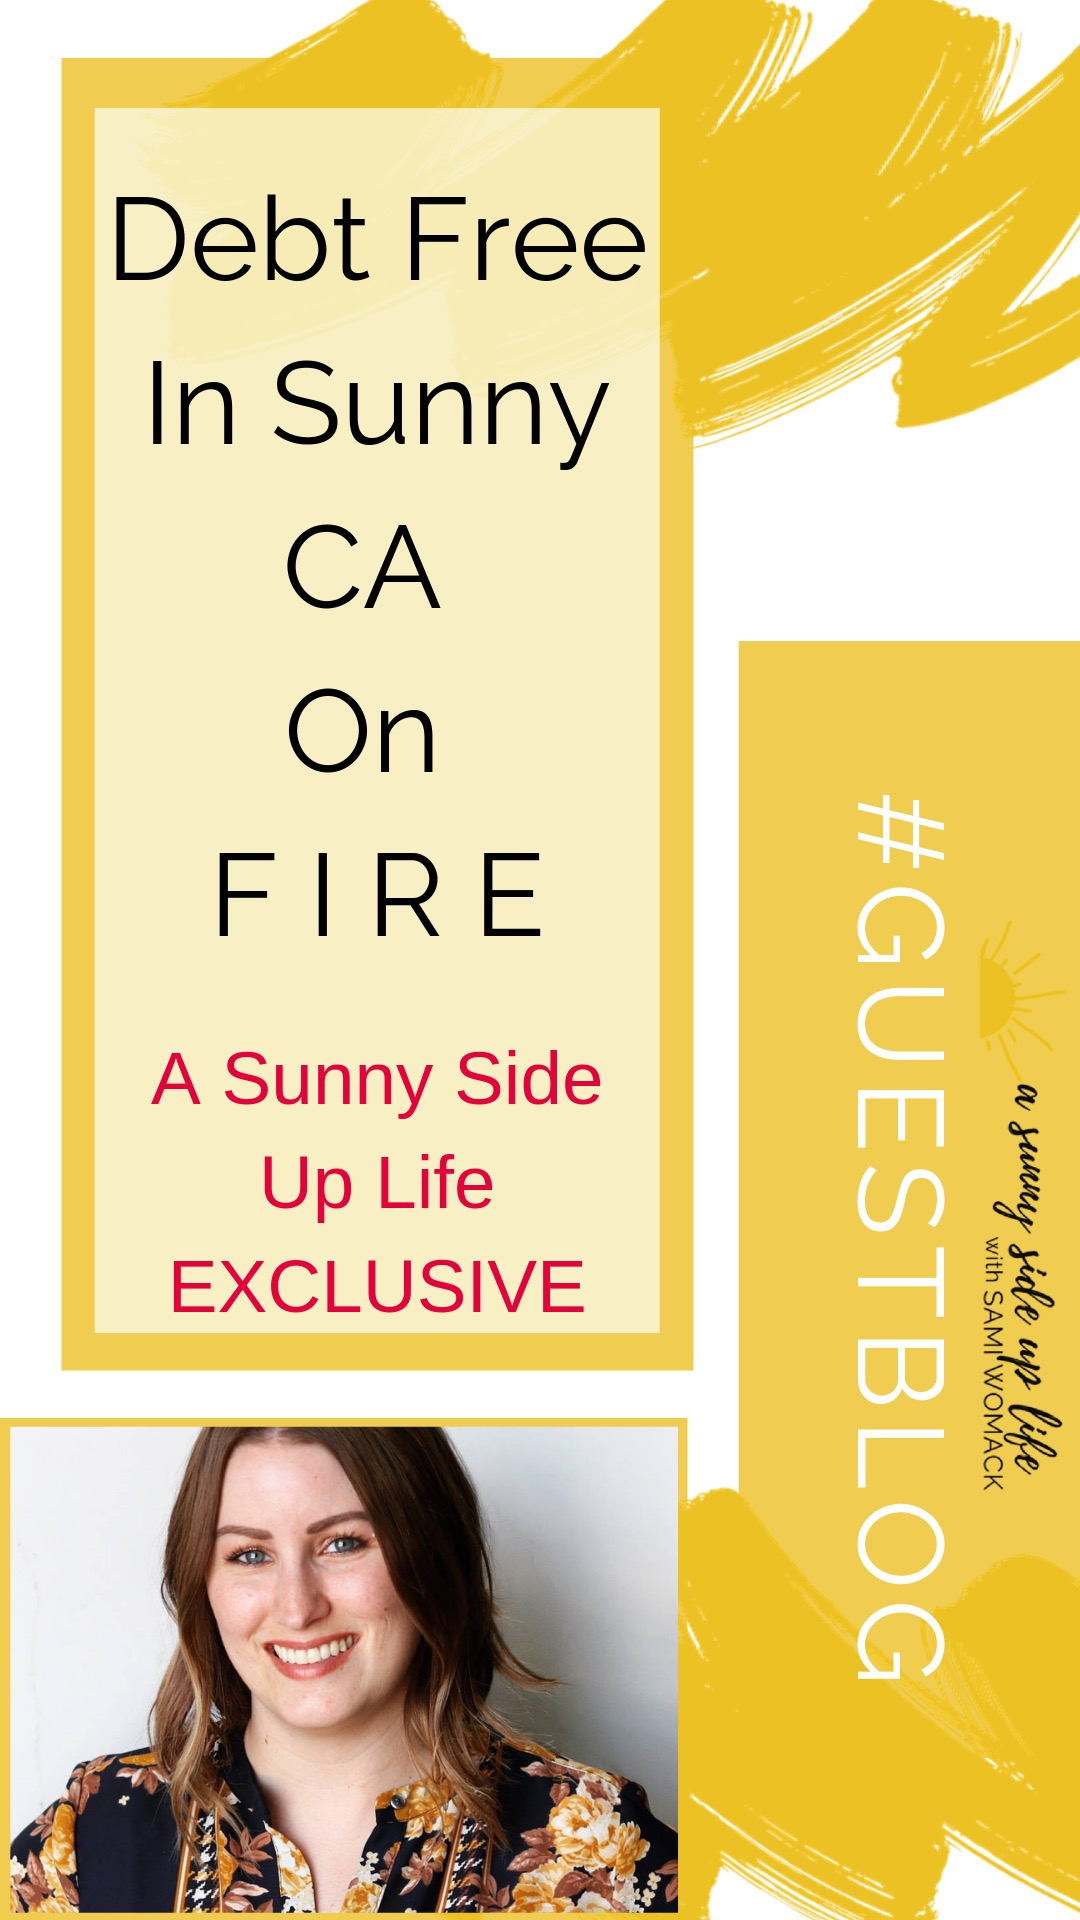 Debt Free in Sunny CA | Debt Free Community | FIRE | retire early | financial independent | how to | where to start | story | budgeting | dave ramsey | money advice